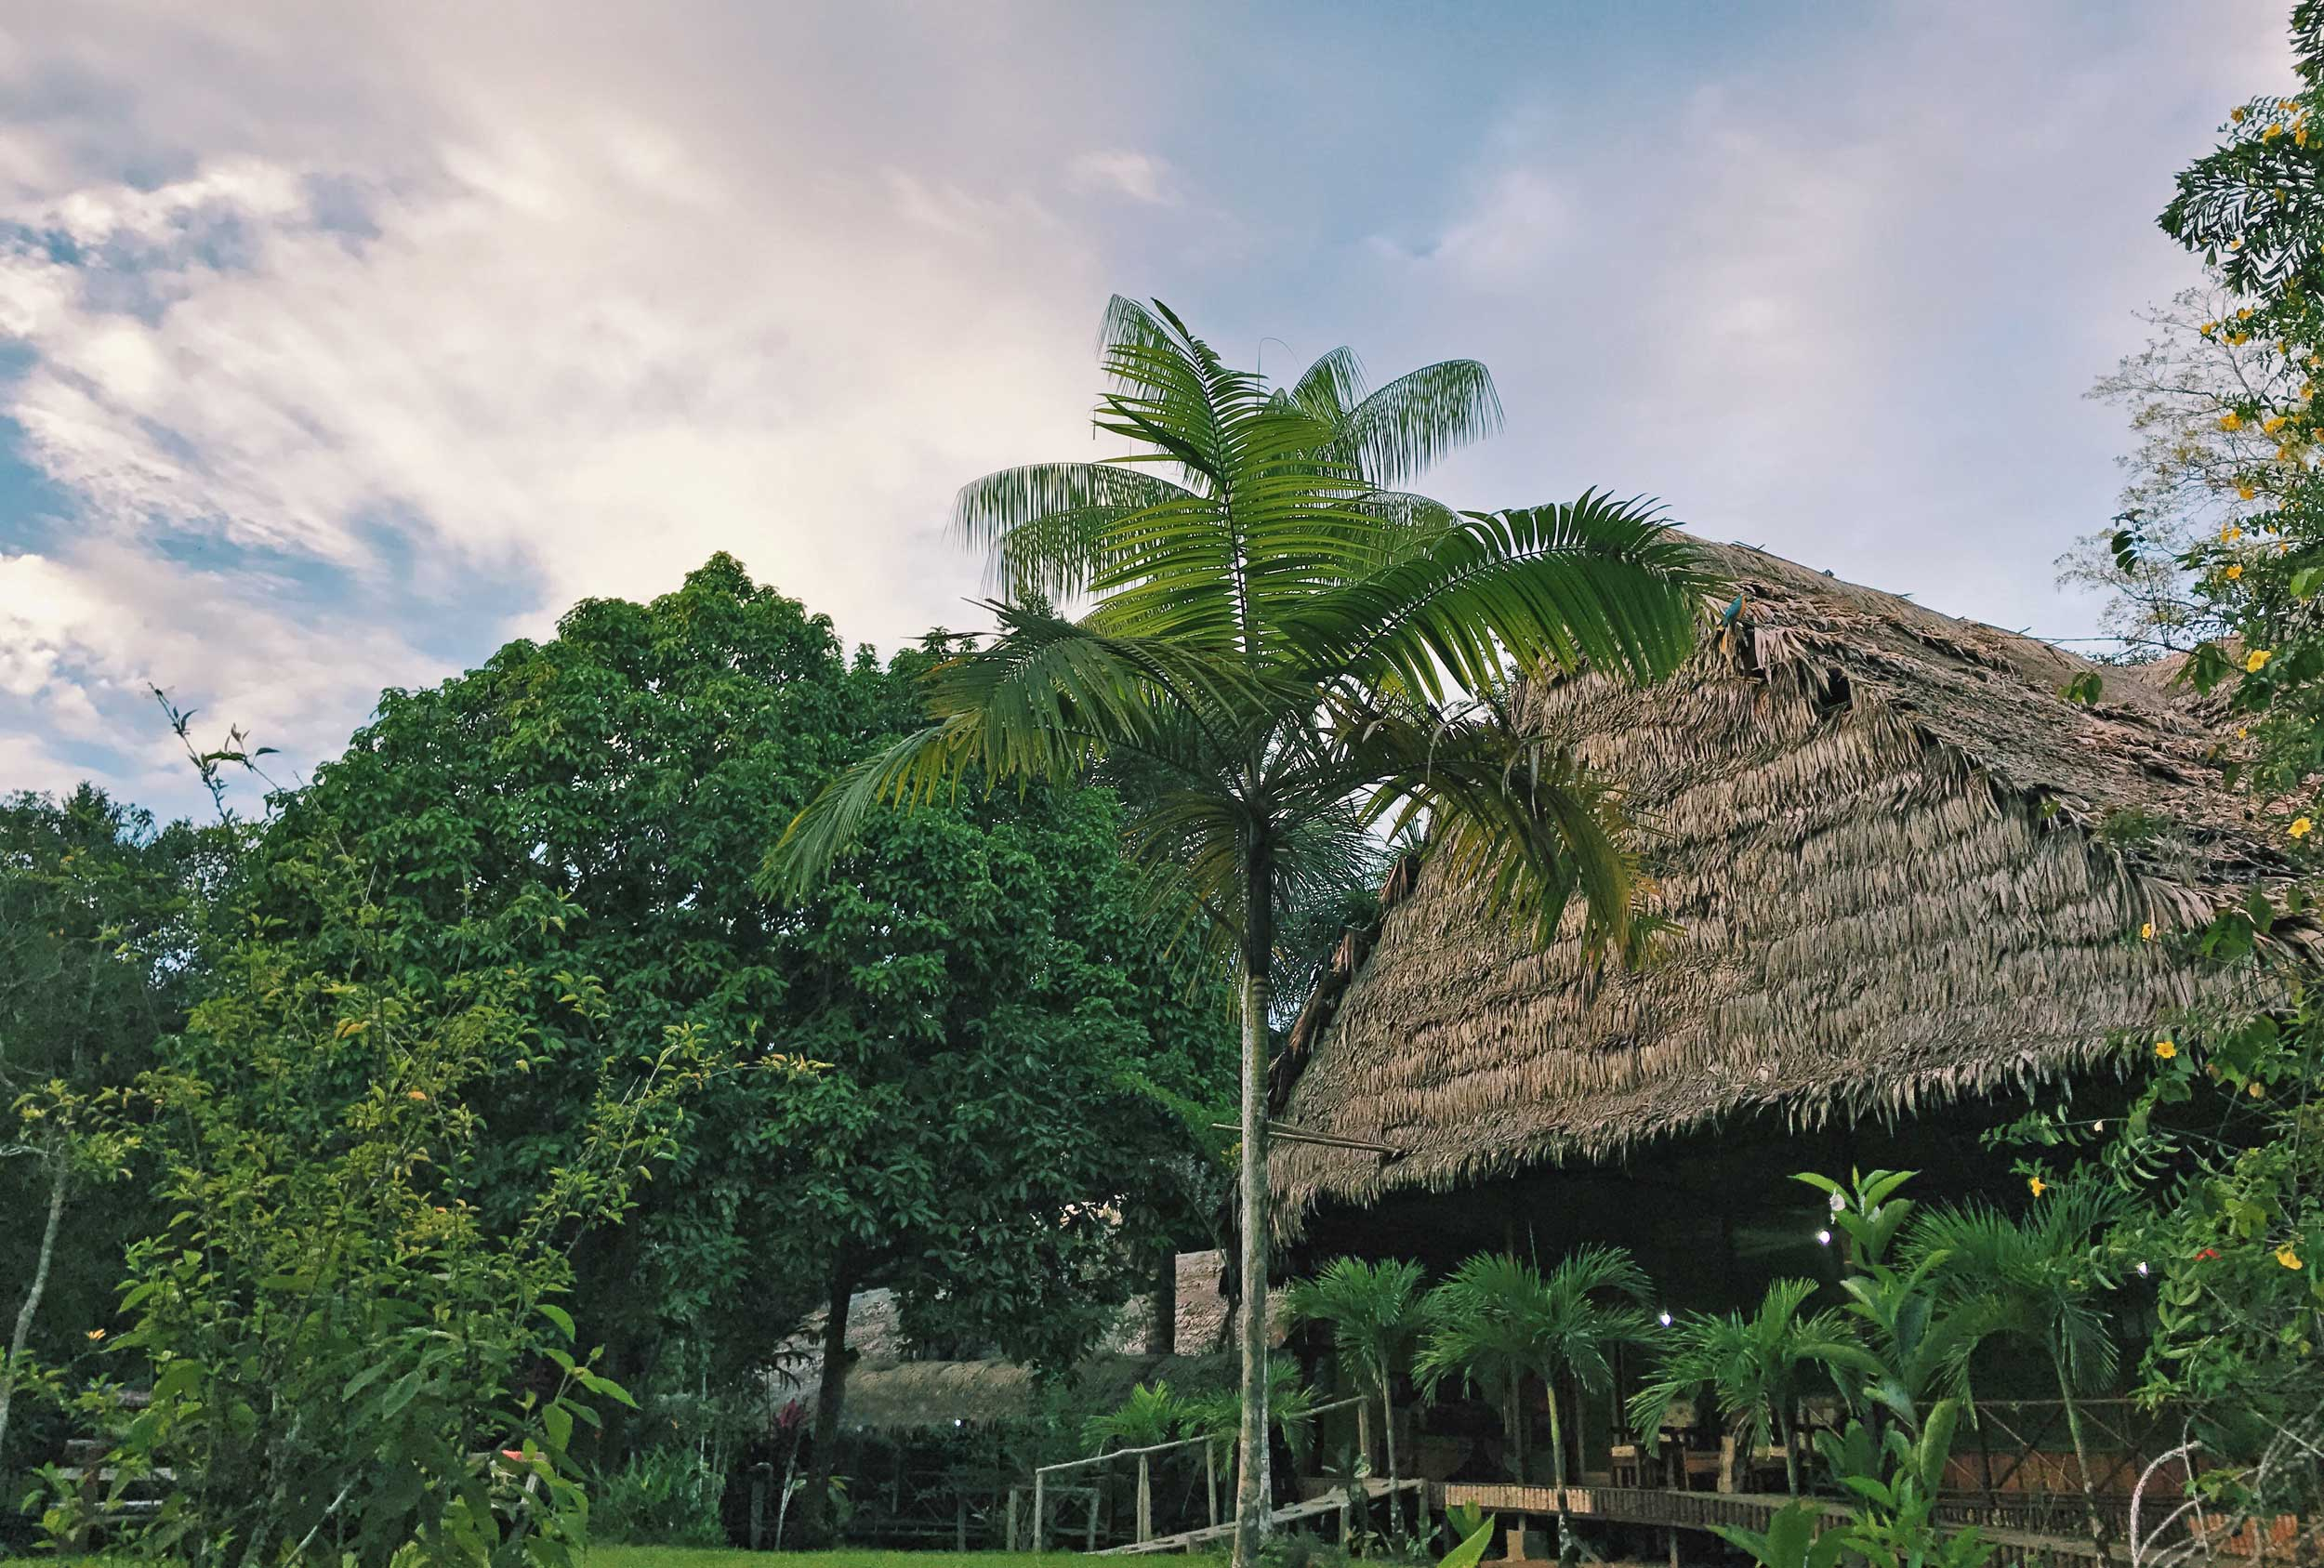 A thatched roof building in the jungle, Peru